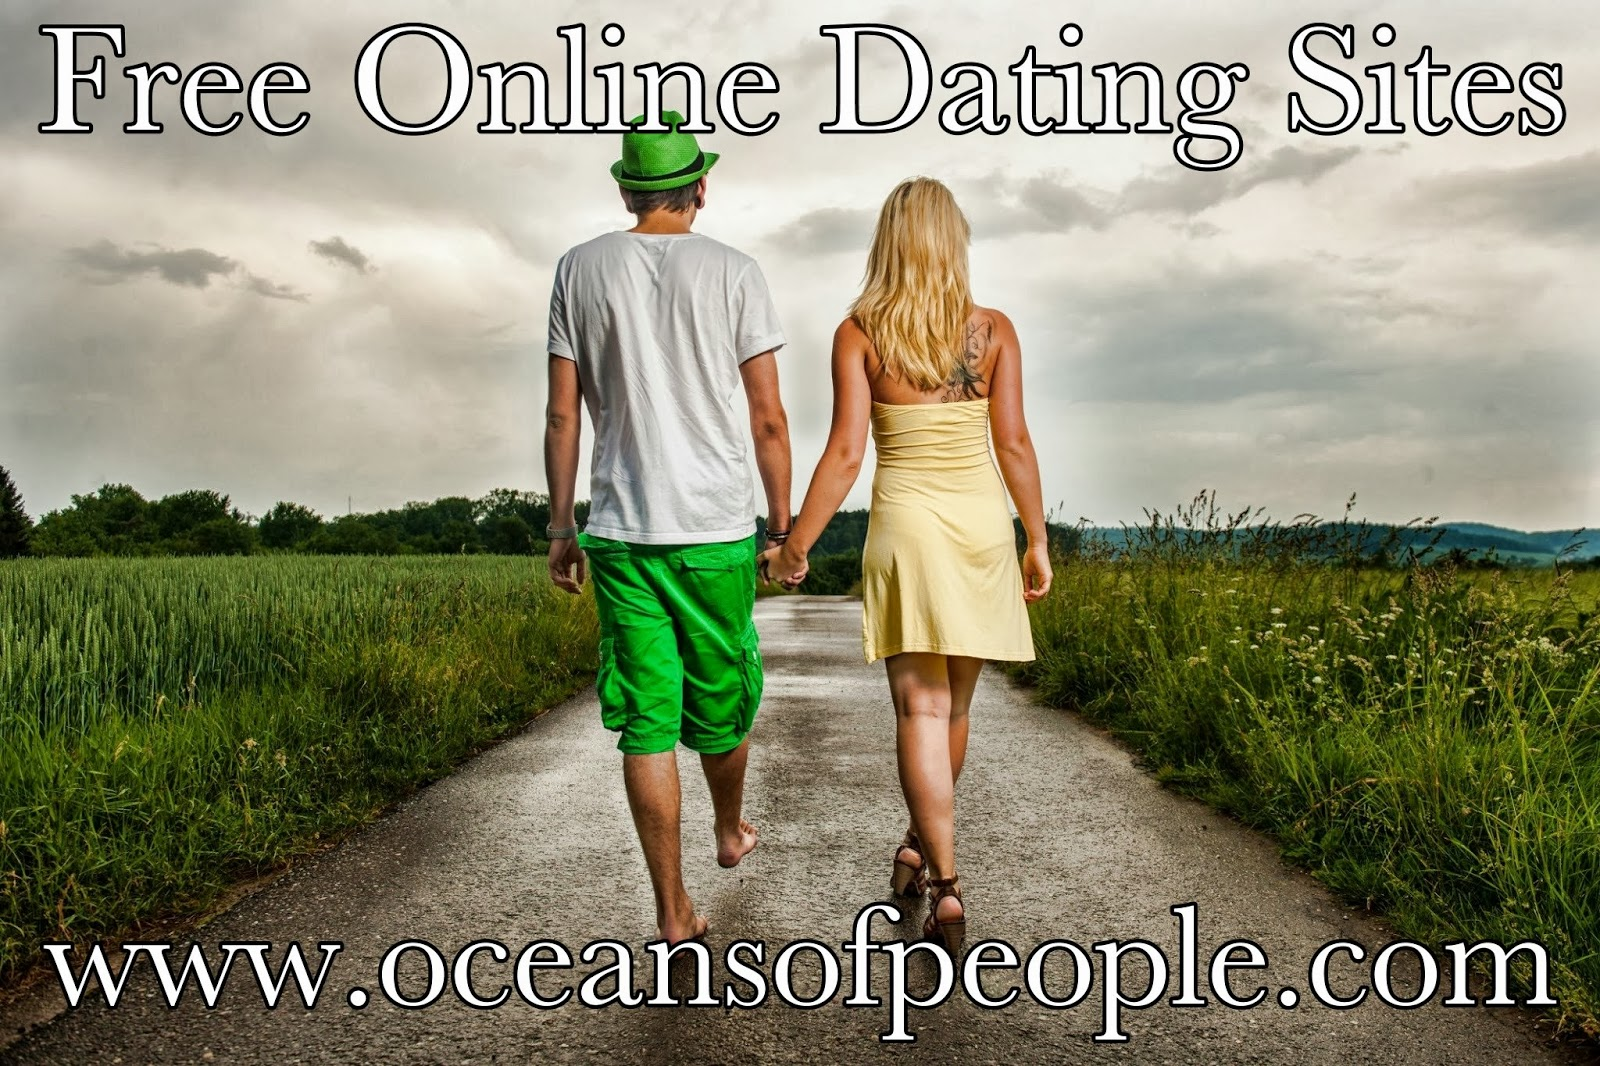 Free dating sites in arkansas